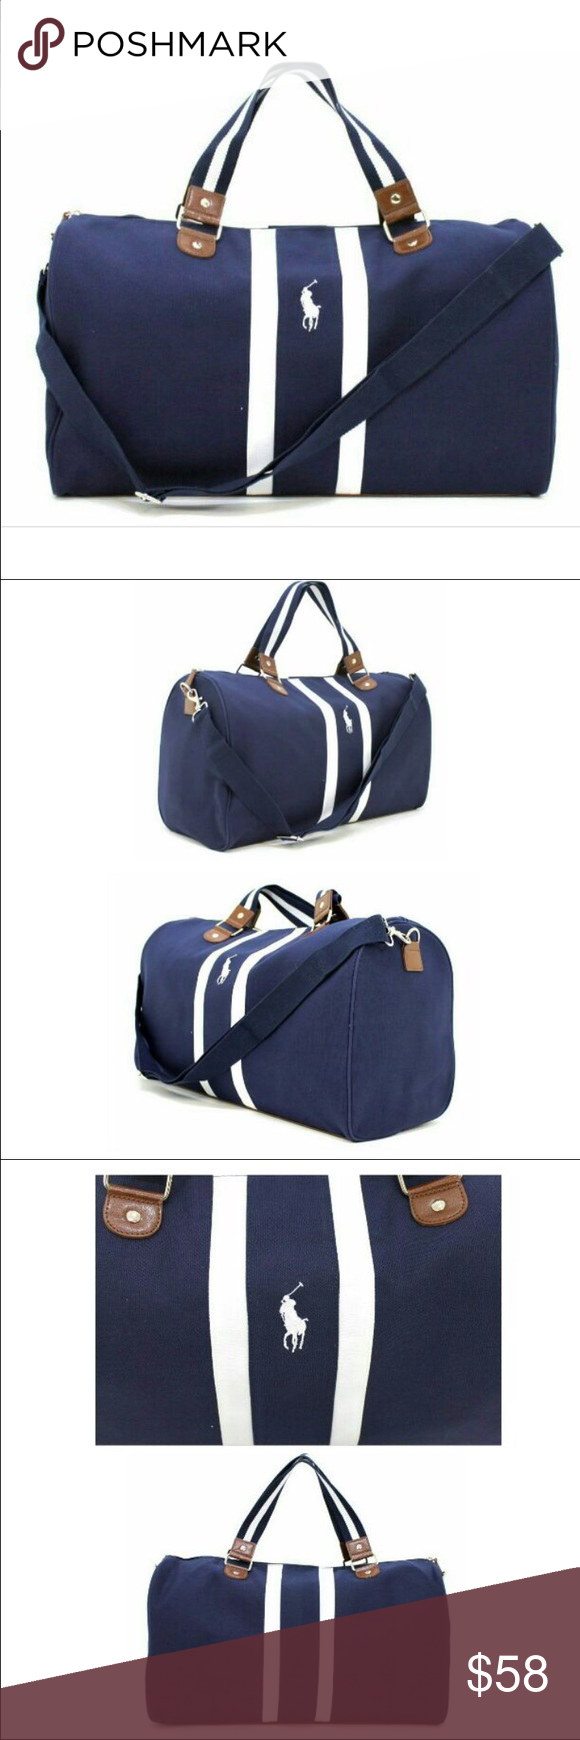 33865c2ef8 Polo ralph Lauren duffle bag Ralph Lauren Polo Dark Navy Blue White Weekend  Travel Gym Holdall Bag Sporty